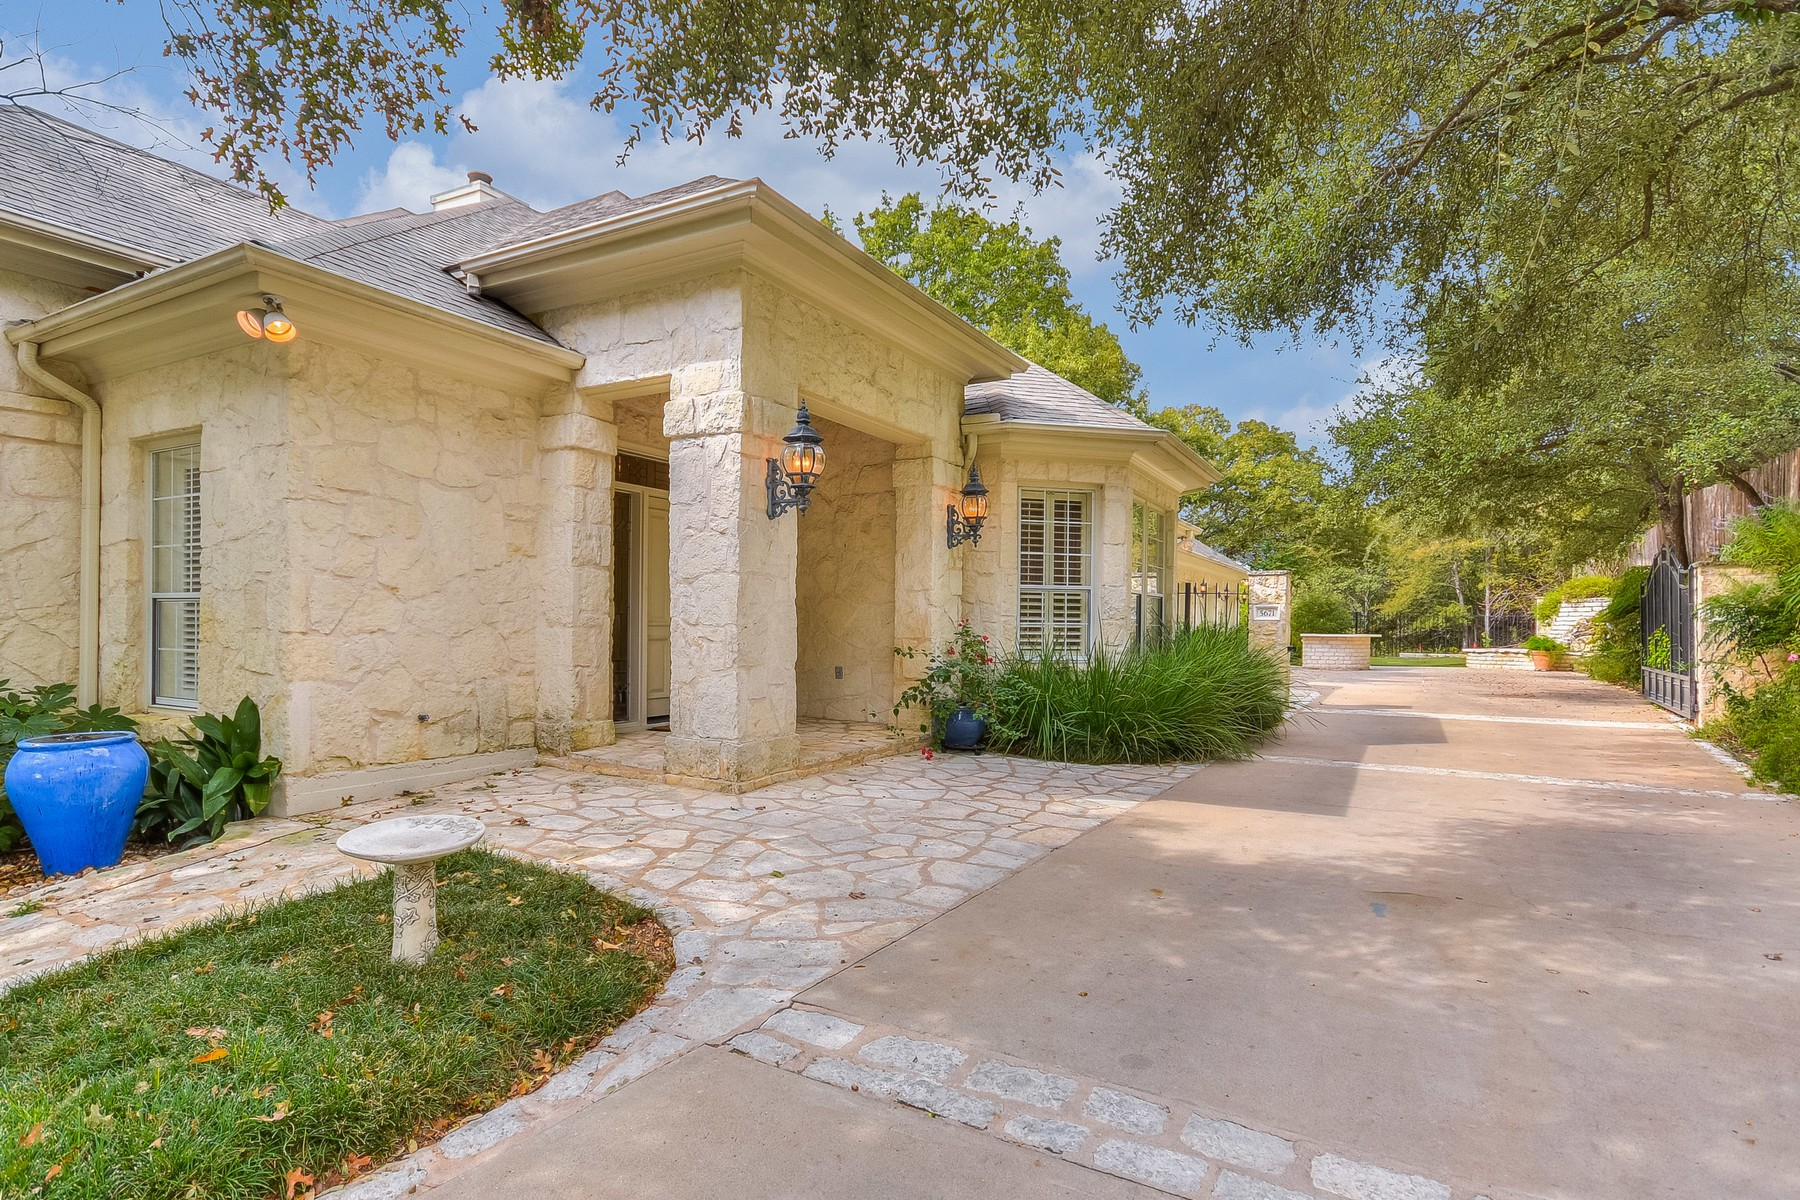 Single Family Home for Sale at Texas Hill Country with a French Flare! 5671 Rain Creek Pkwy Austin, Texas 78759 United States